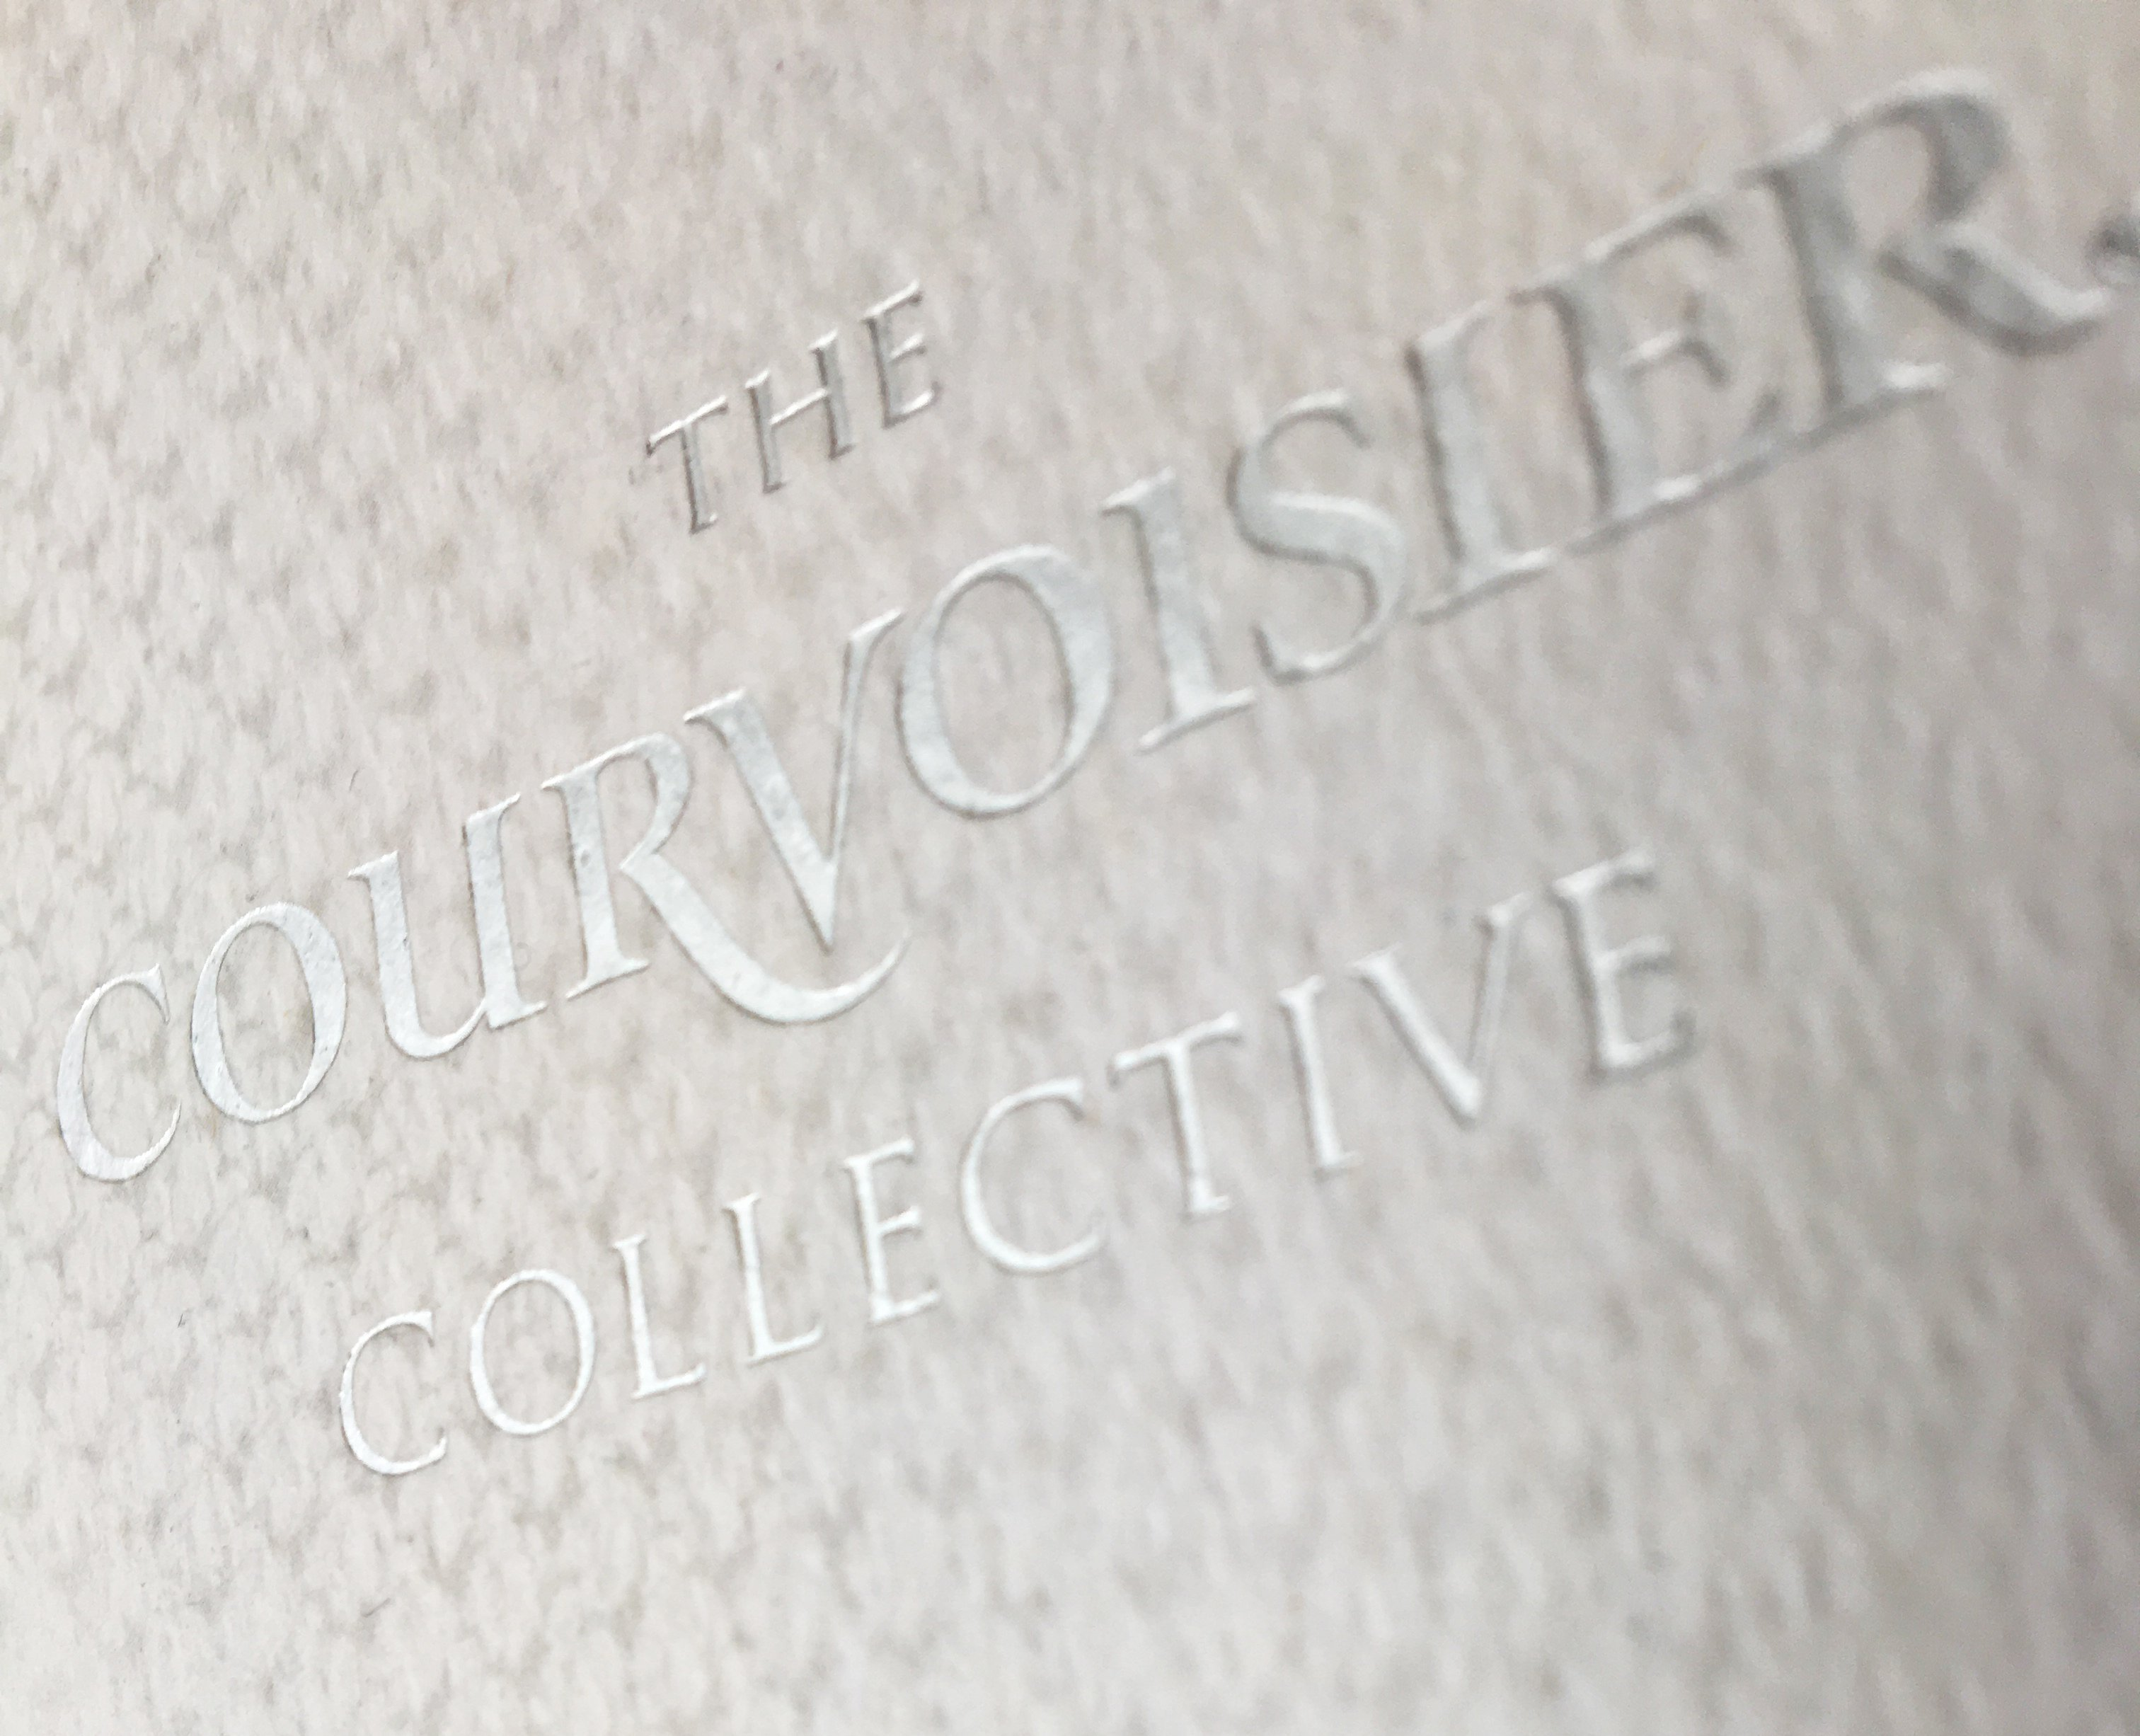 Courvoisier collective foil stamping